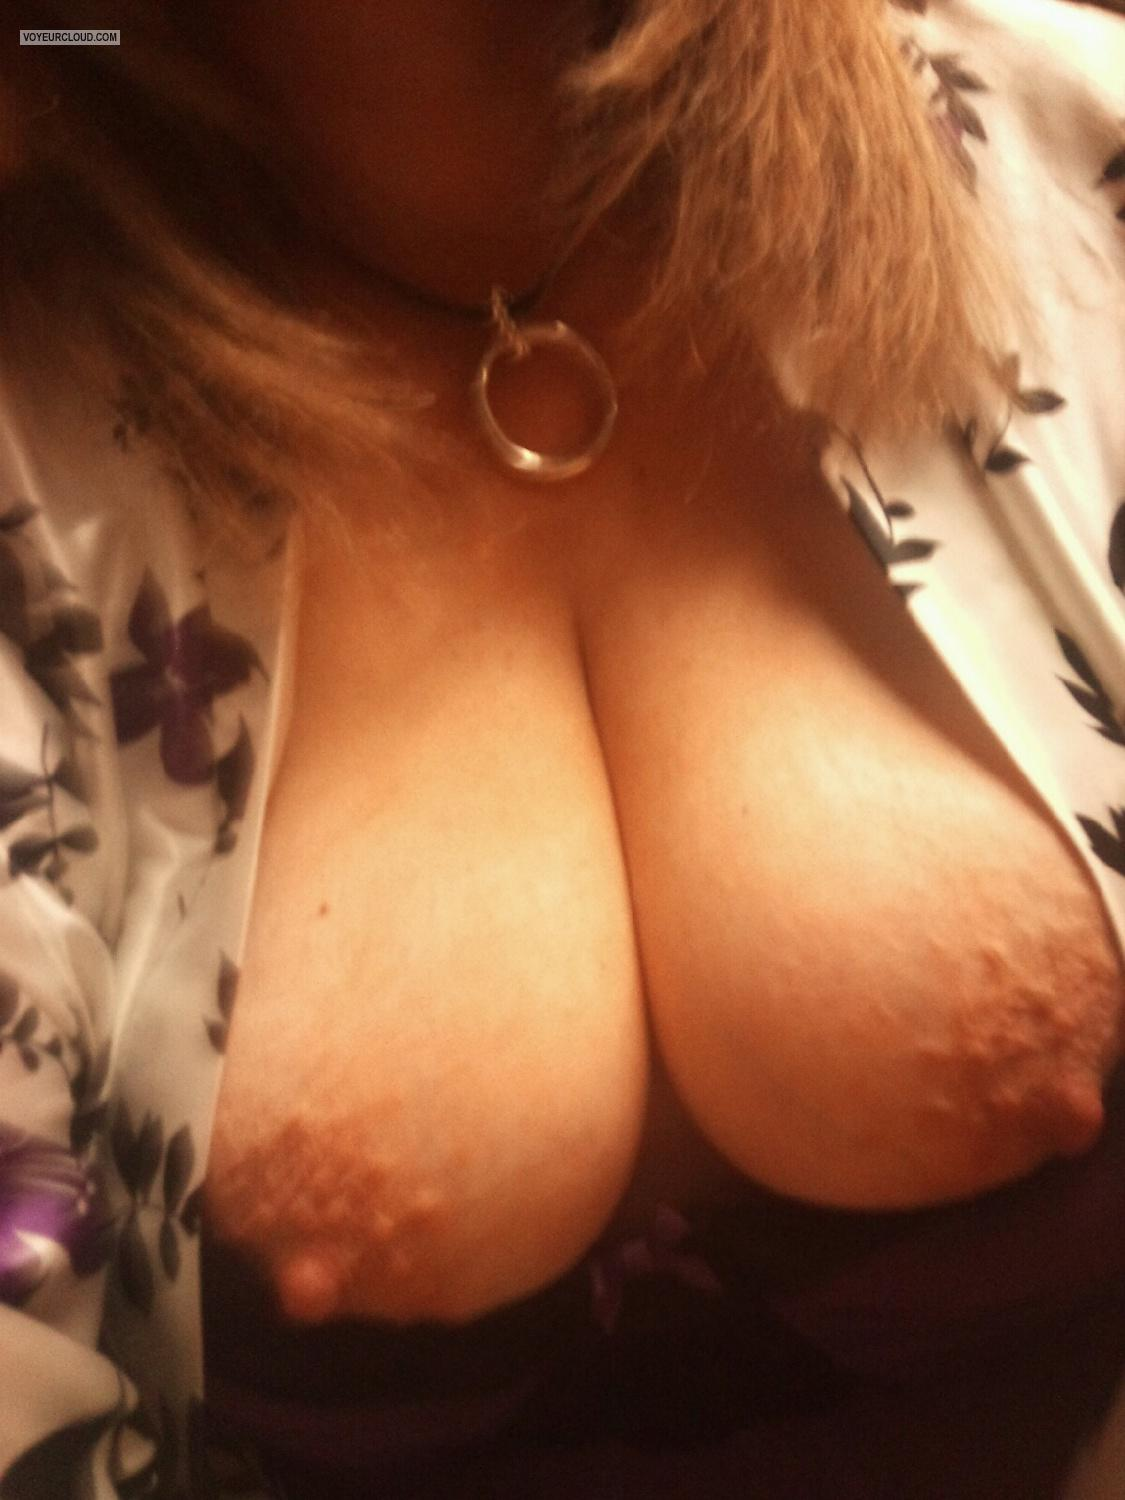 My Big Tits Selfie by Shelly